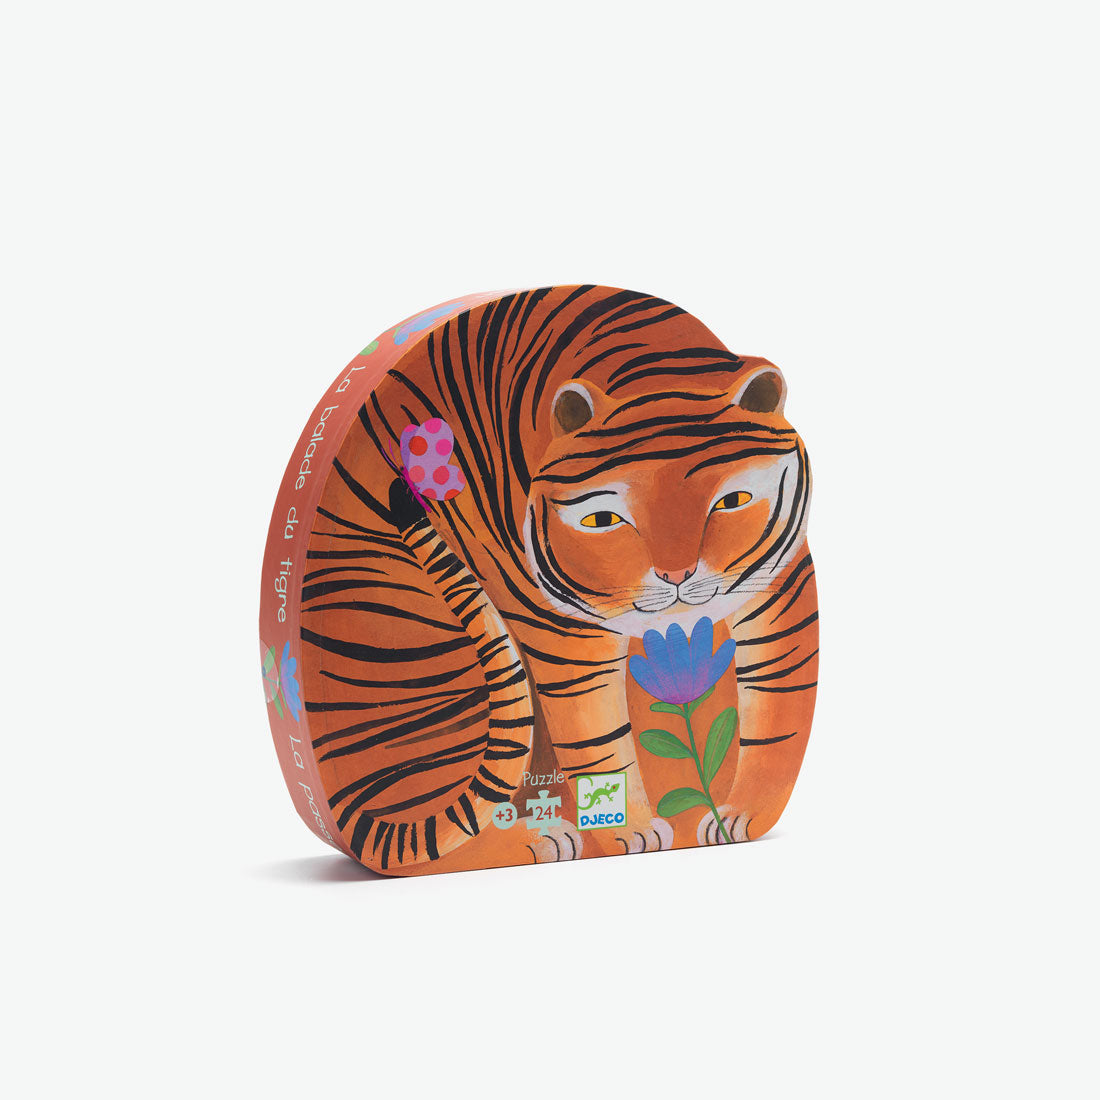 Silhouette Puzzle - The Tiger's Walk